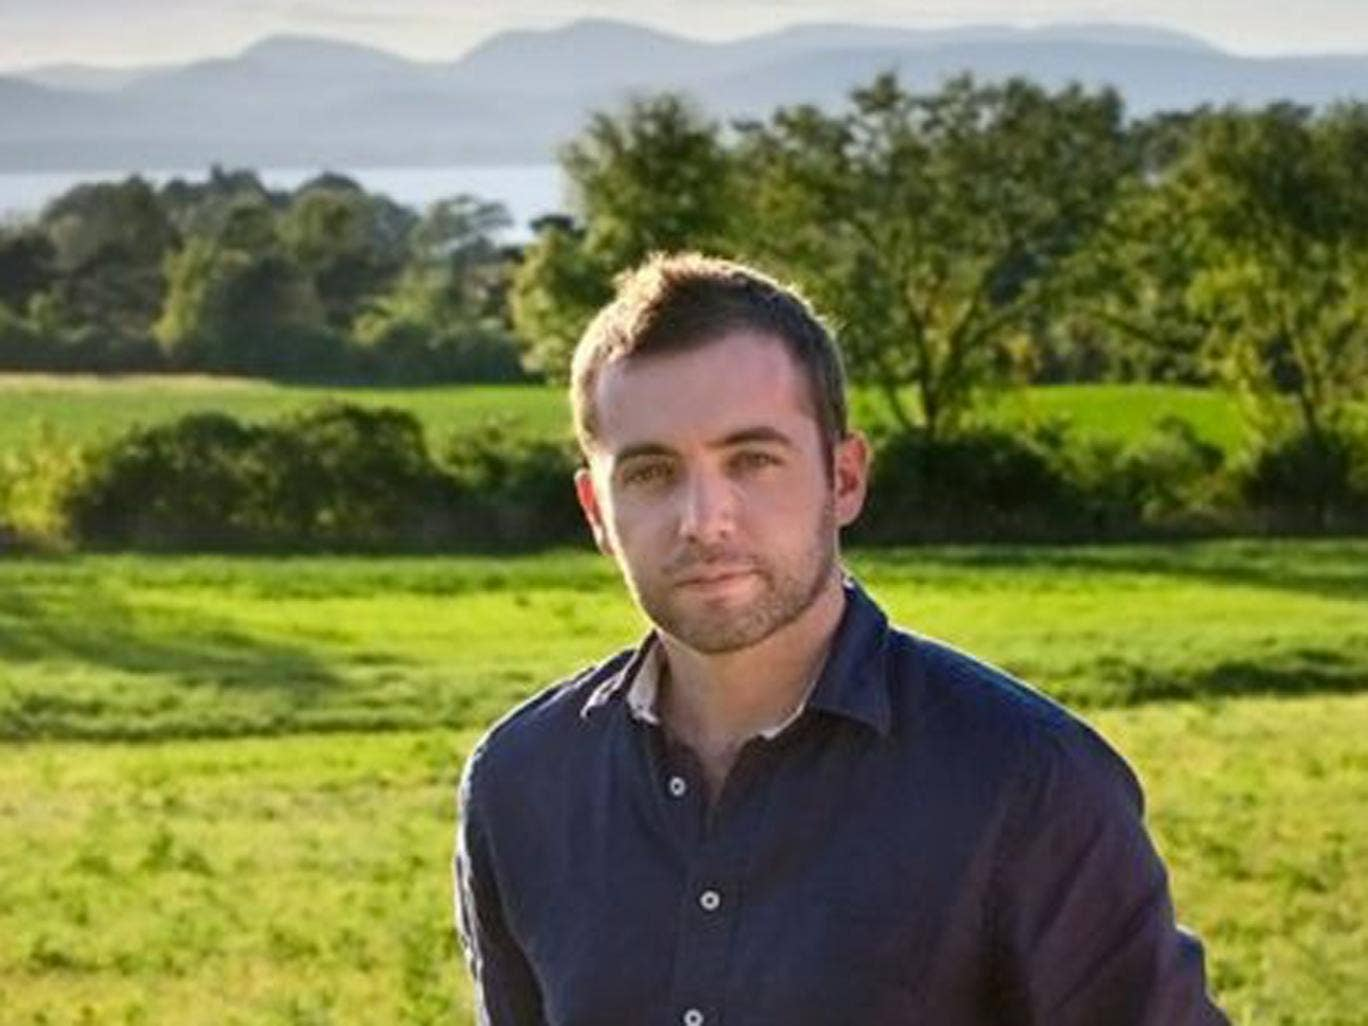 BuzzFeed reporter Michael Hastings, whose 2010 Rolling Stone magazine profile of the US military chief in Afghanistan, Stanley McChrystal, led to the general being relieved of command